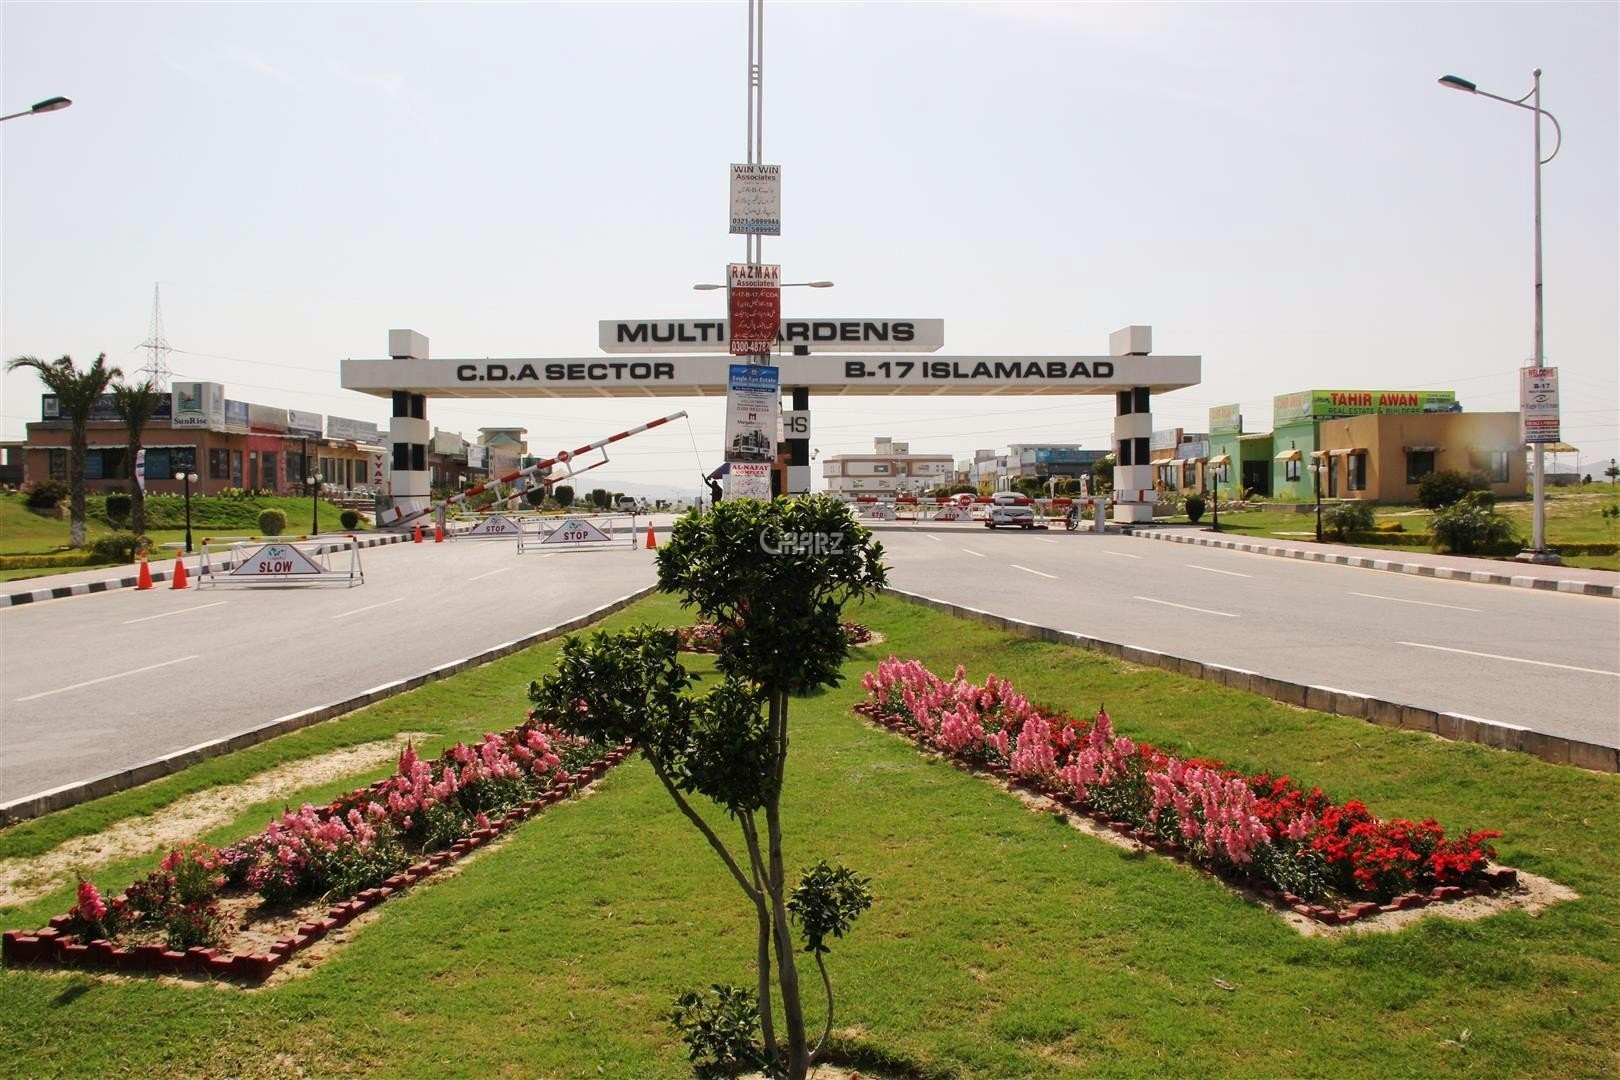 8 Marla Plot in B-17 Block-C Main Double Road, Islamabad is for Sale